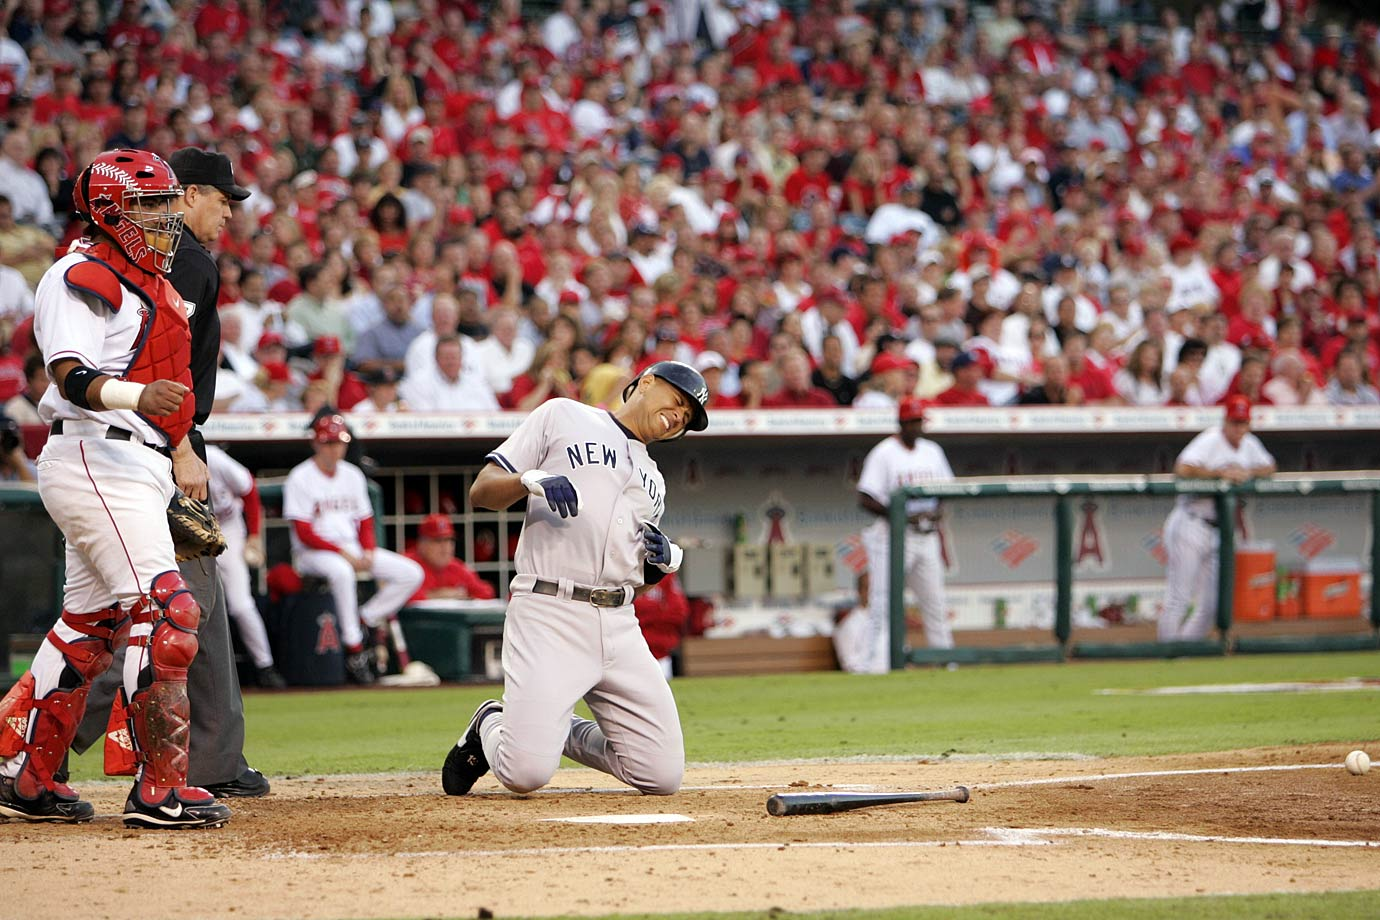 2005 American League Division Series, Game 1